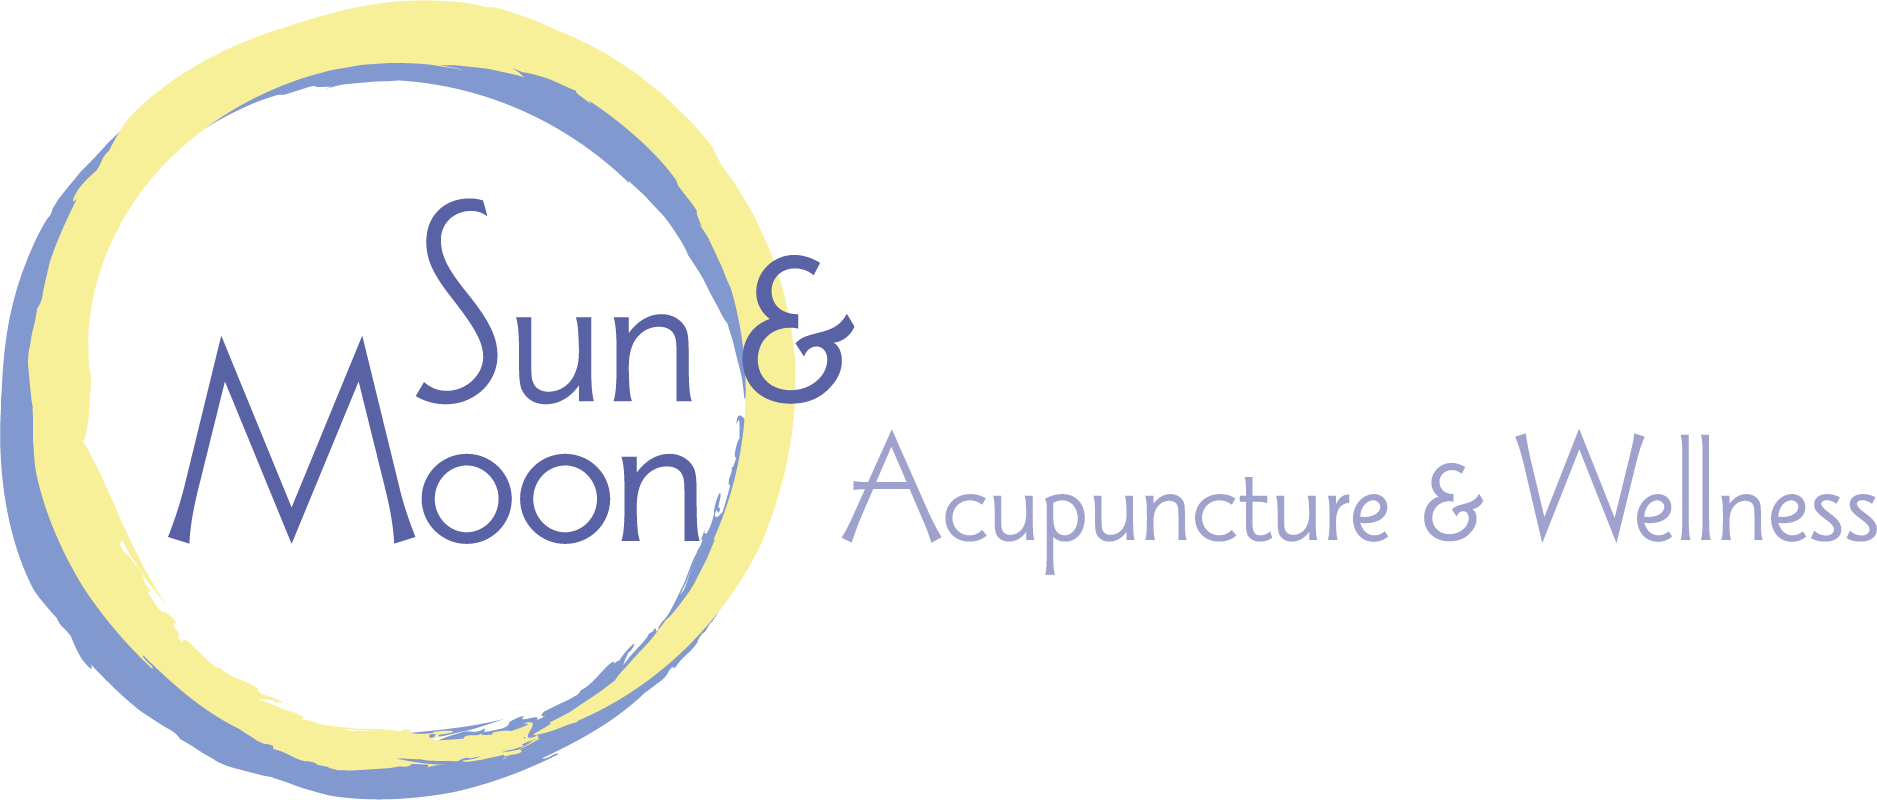 Sun & Moon Acupuncture